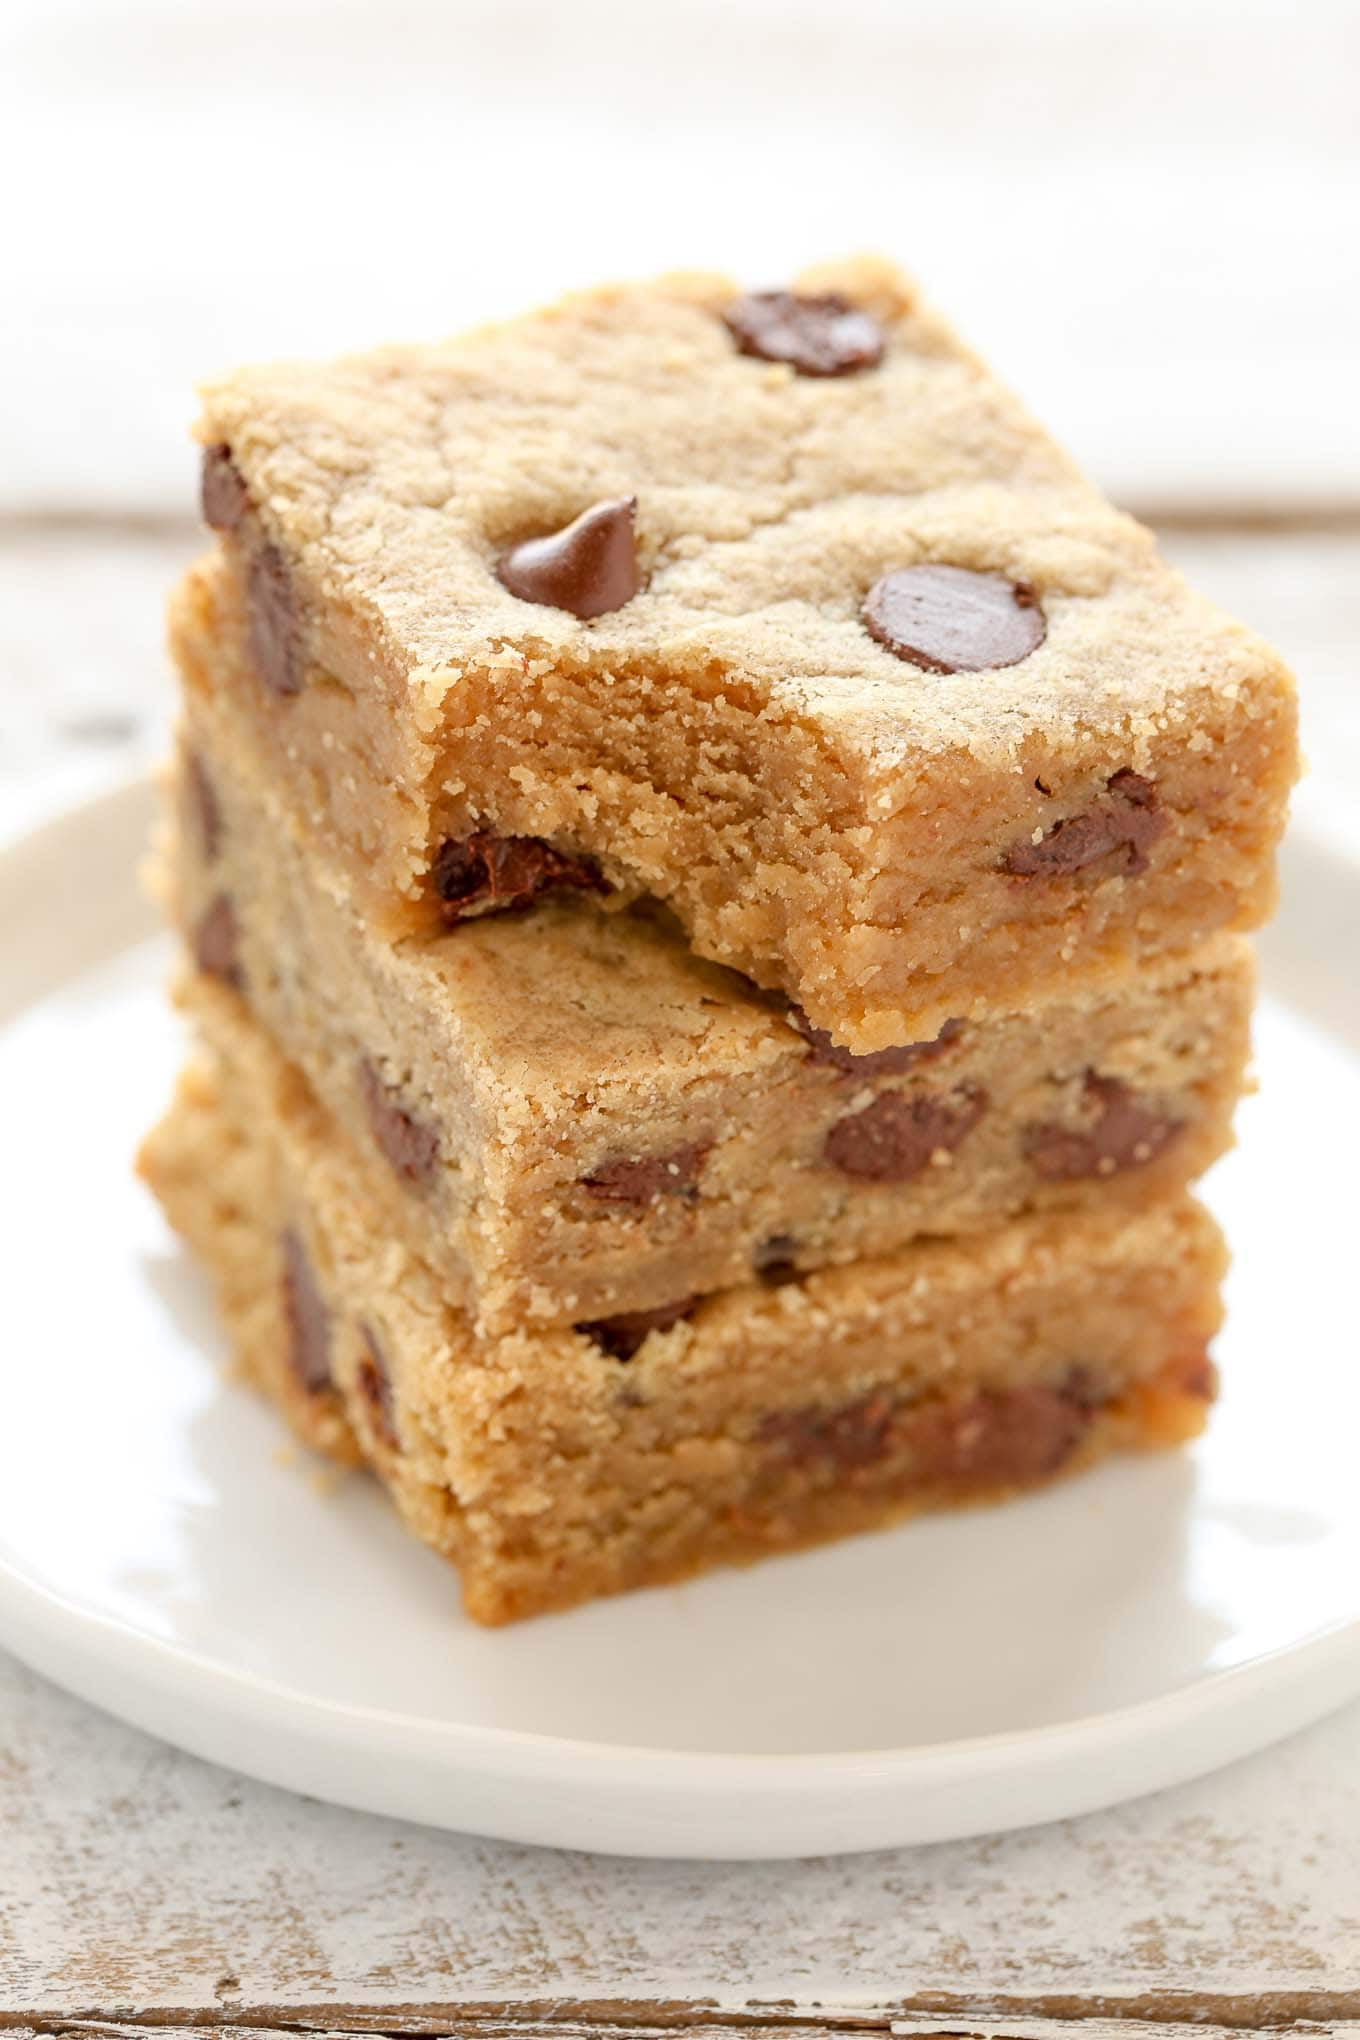 A stack of three peanut butter chocolate chip bars on a white plate. The top bar has a bite missing.